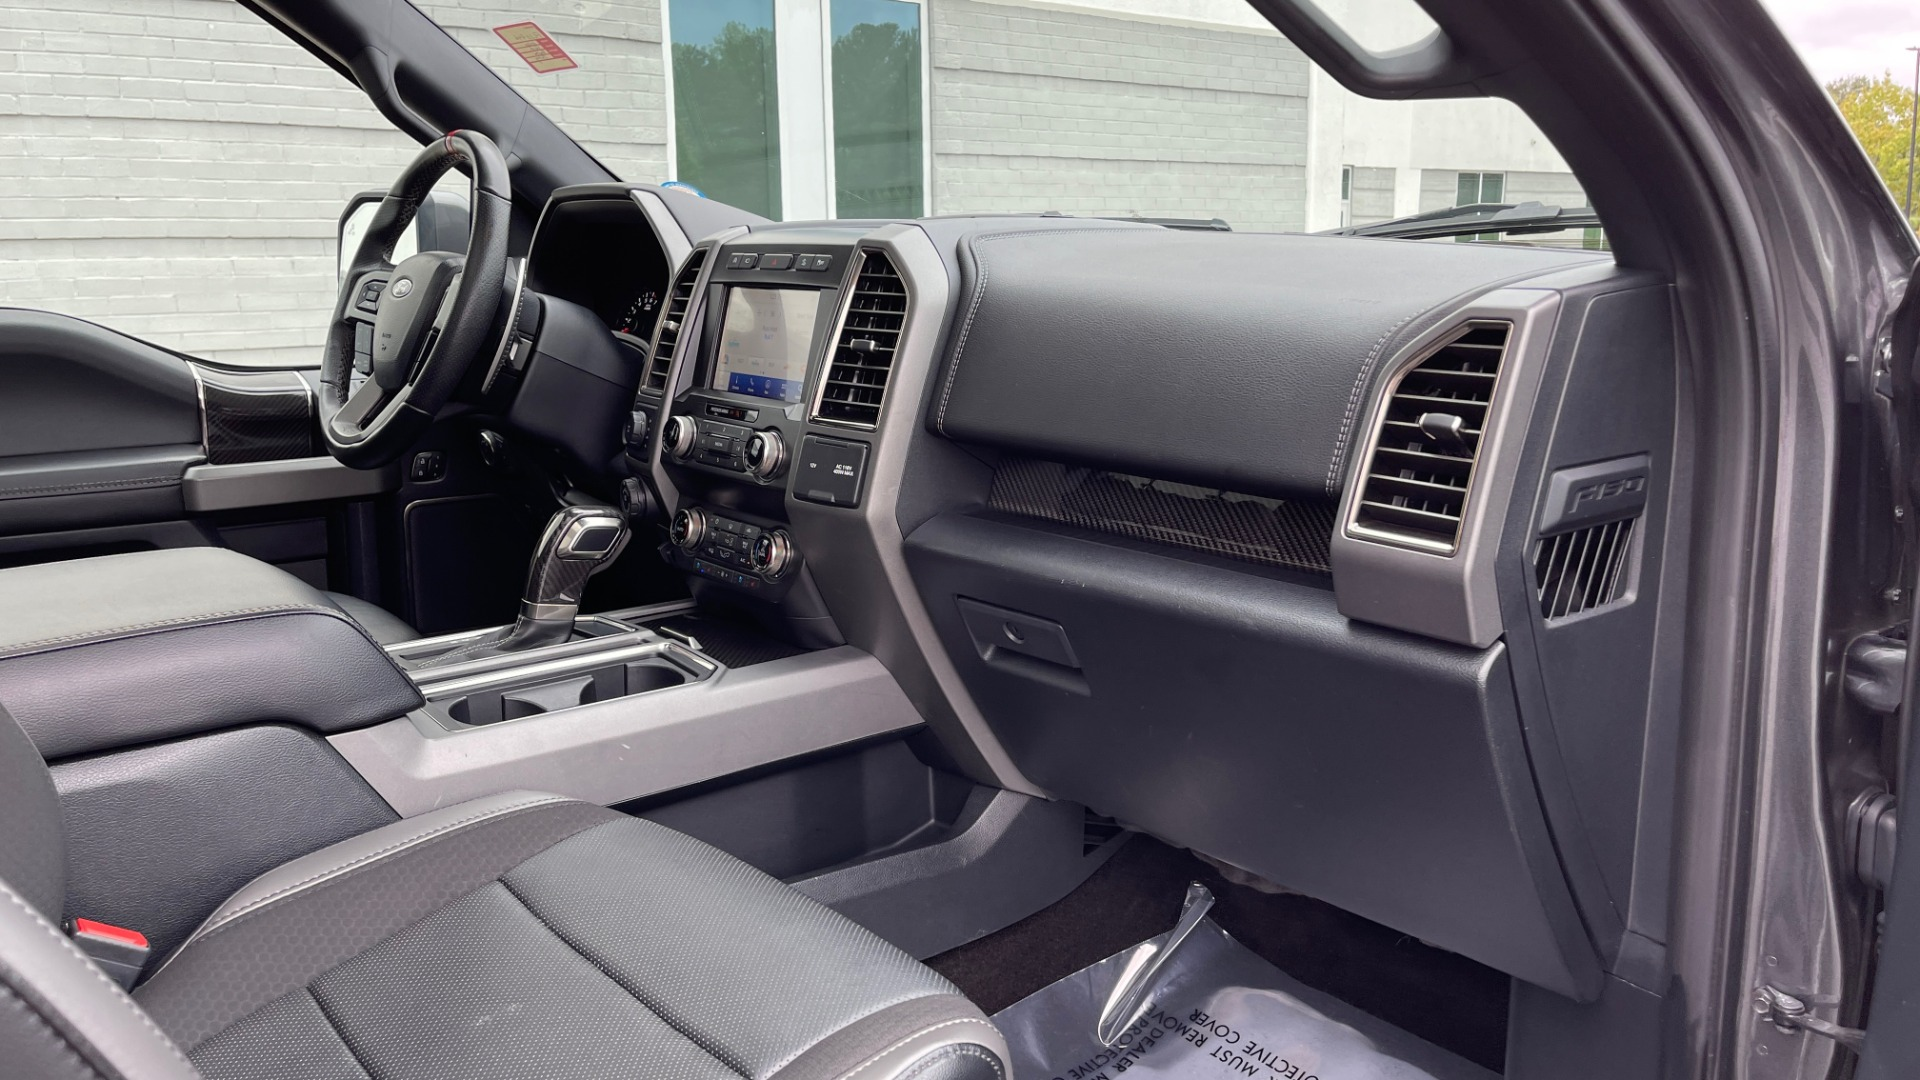 Used 2020 Ford F-150 RAPTOR 4X4 SUPERCREW / NAV / B&O SOUND / SUNROOF / REARVIEW for sale $74,900 at Formula Imports in Charlotte NC 28227 70